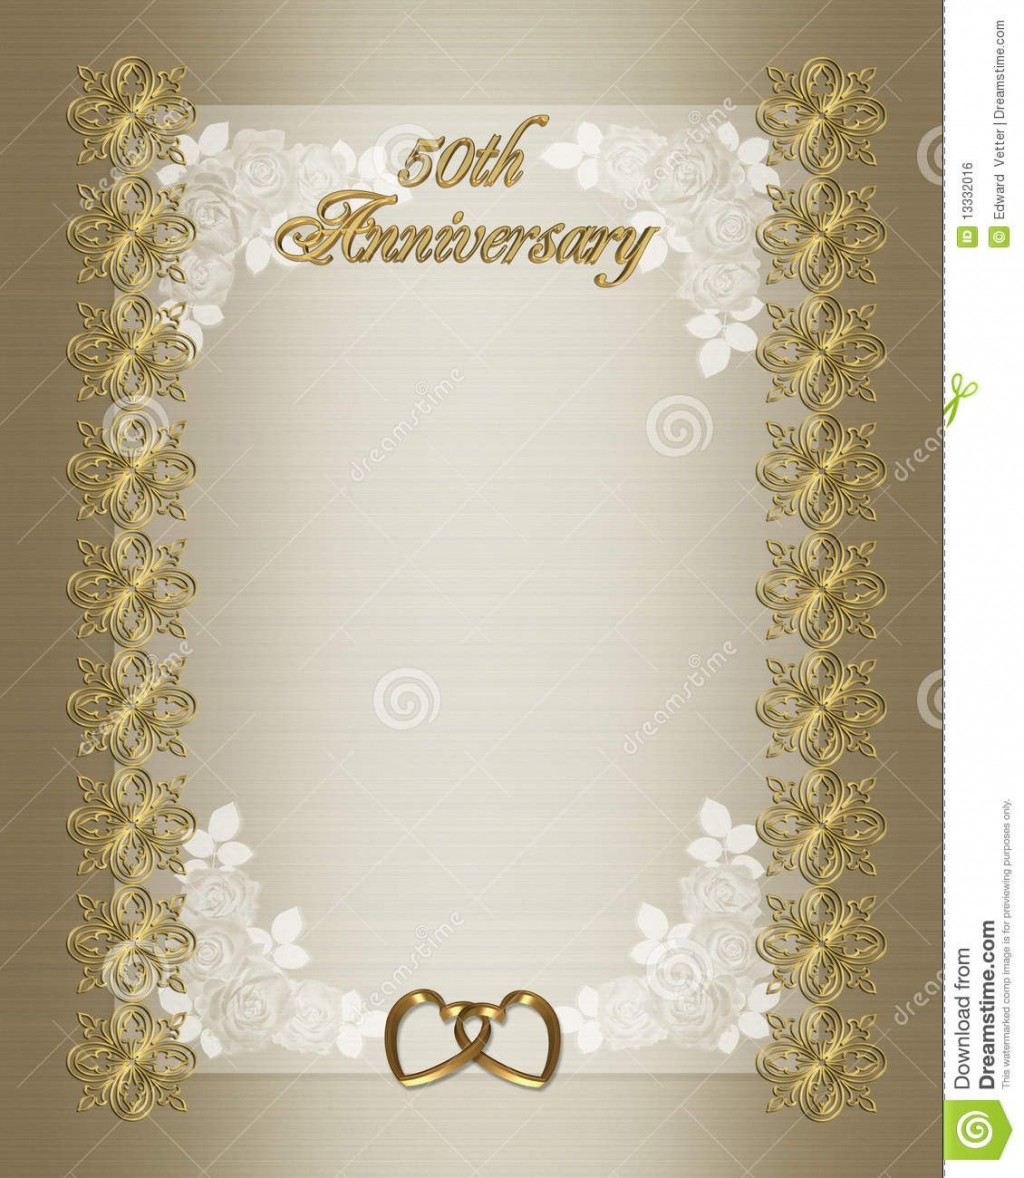 005 Fantastic Free 50th Wedding Anniversary Party Invitation Template Image  TemplatesLarge